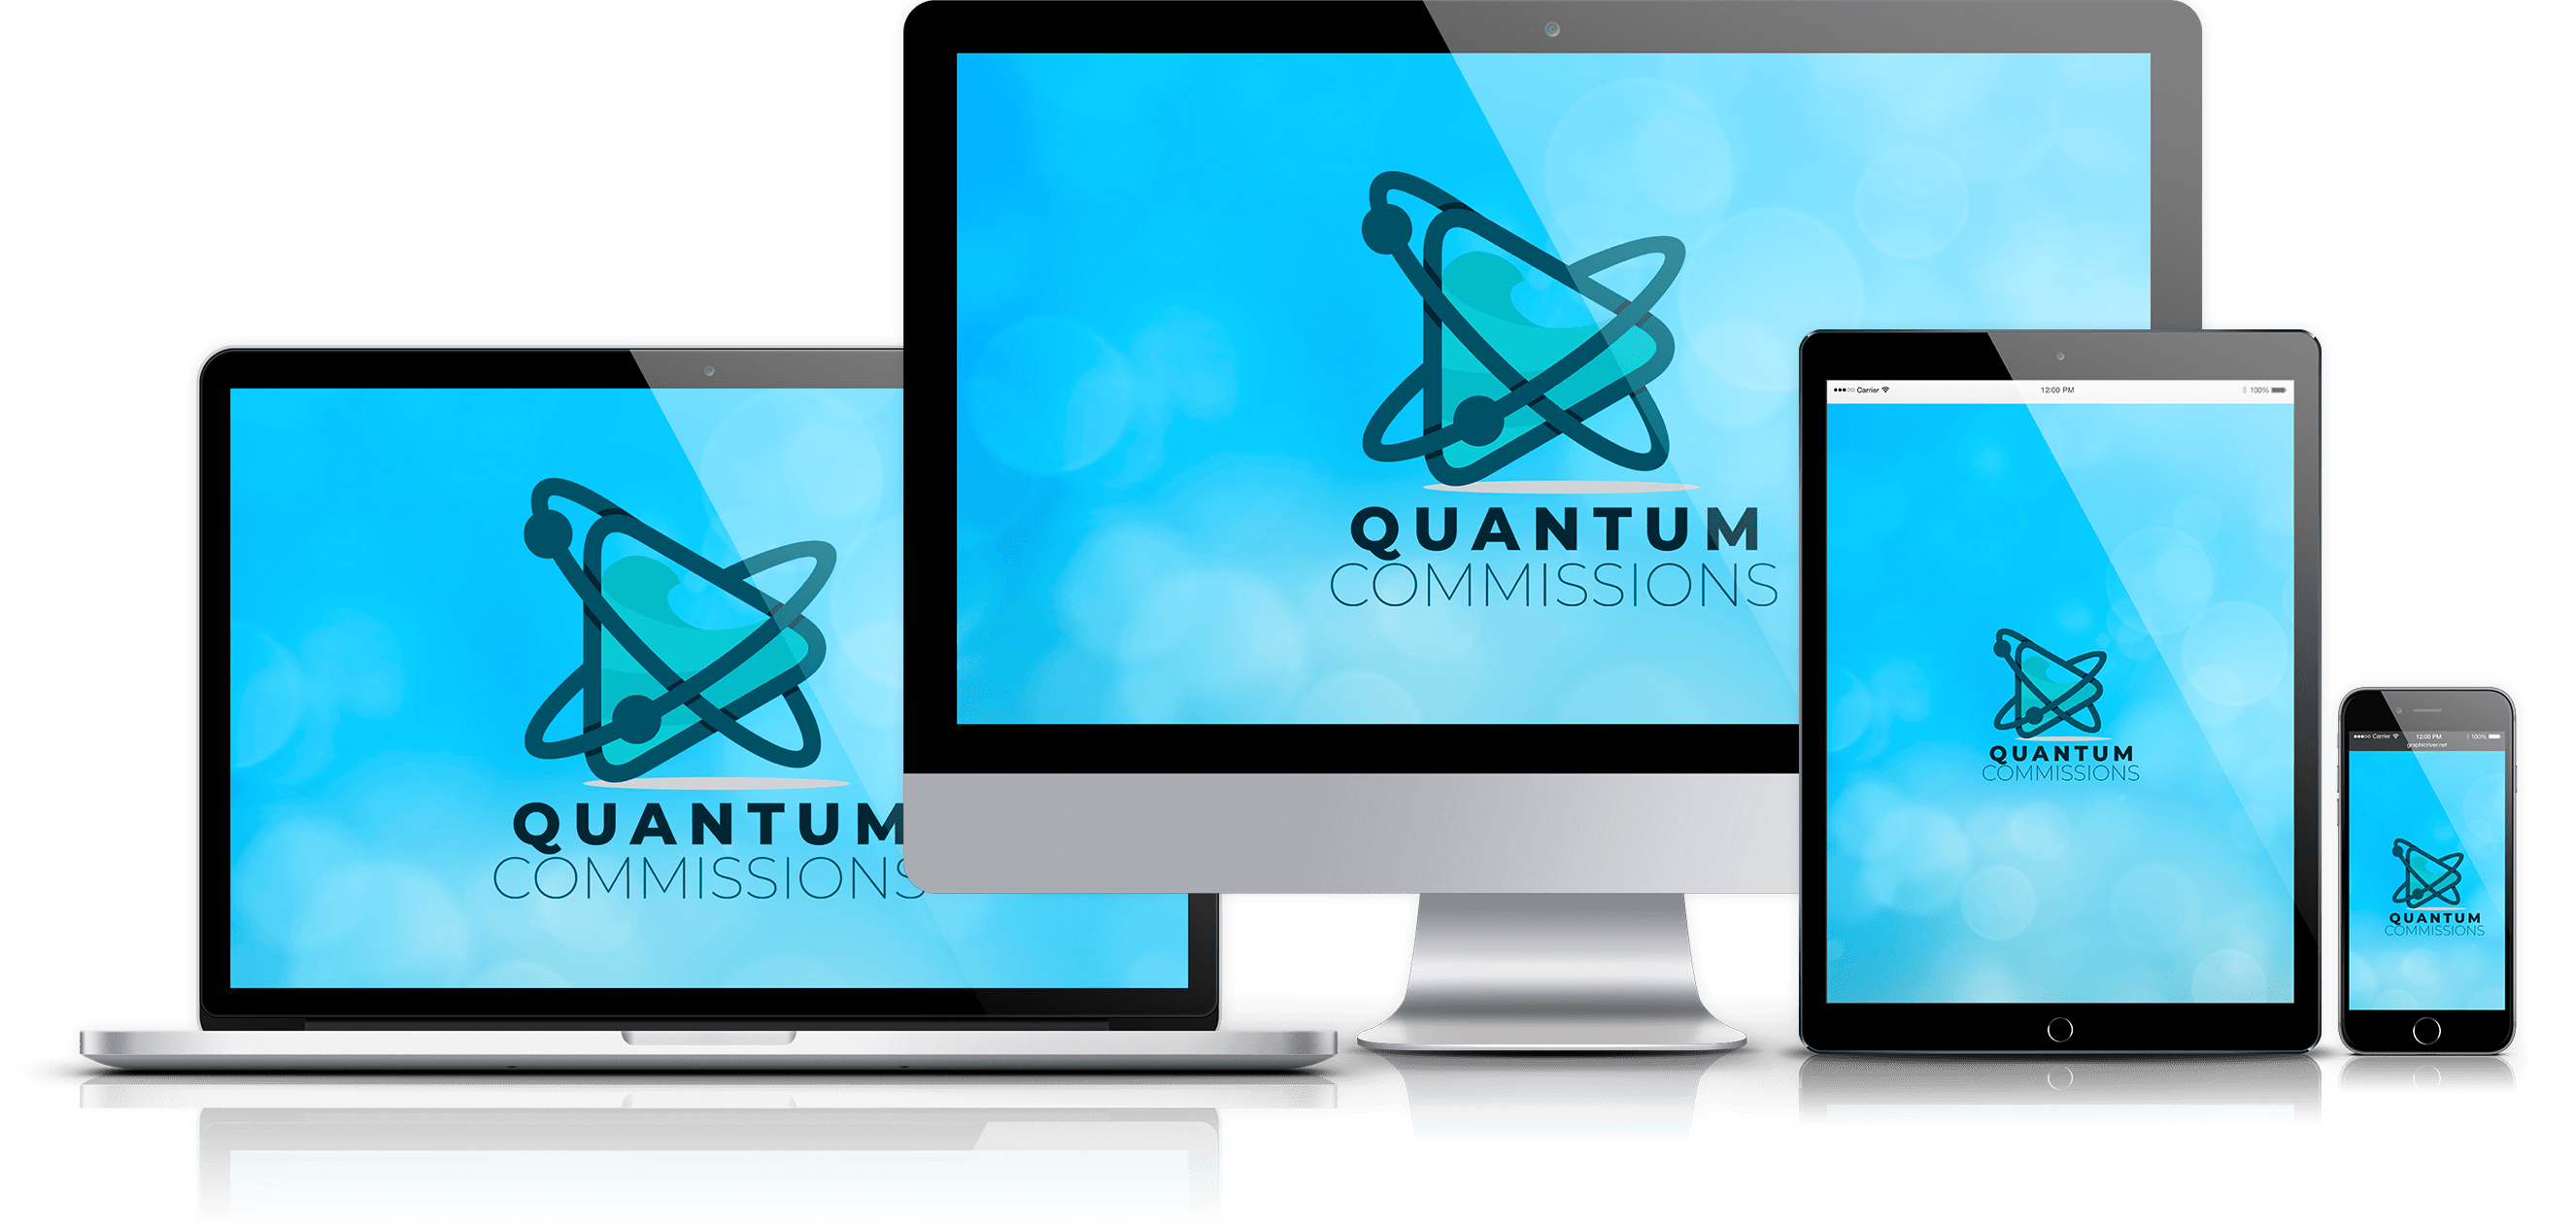 [GET] JayKay Dowdall – Quantum Commissions Download